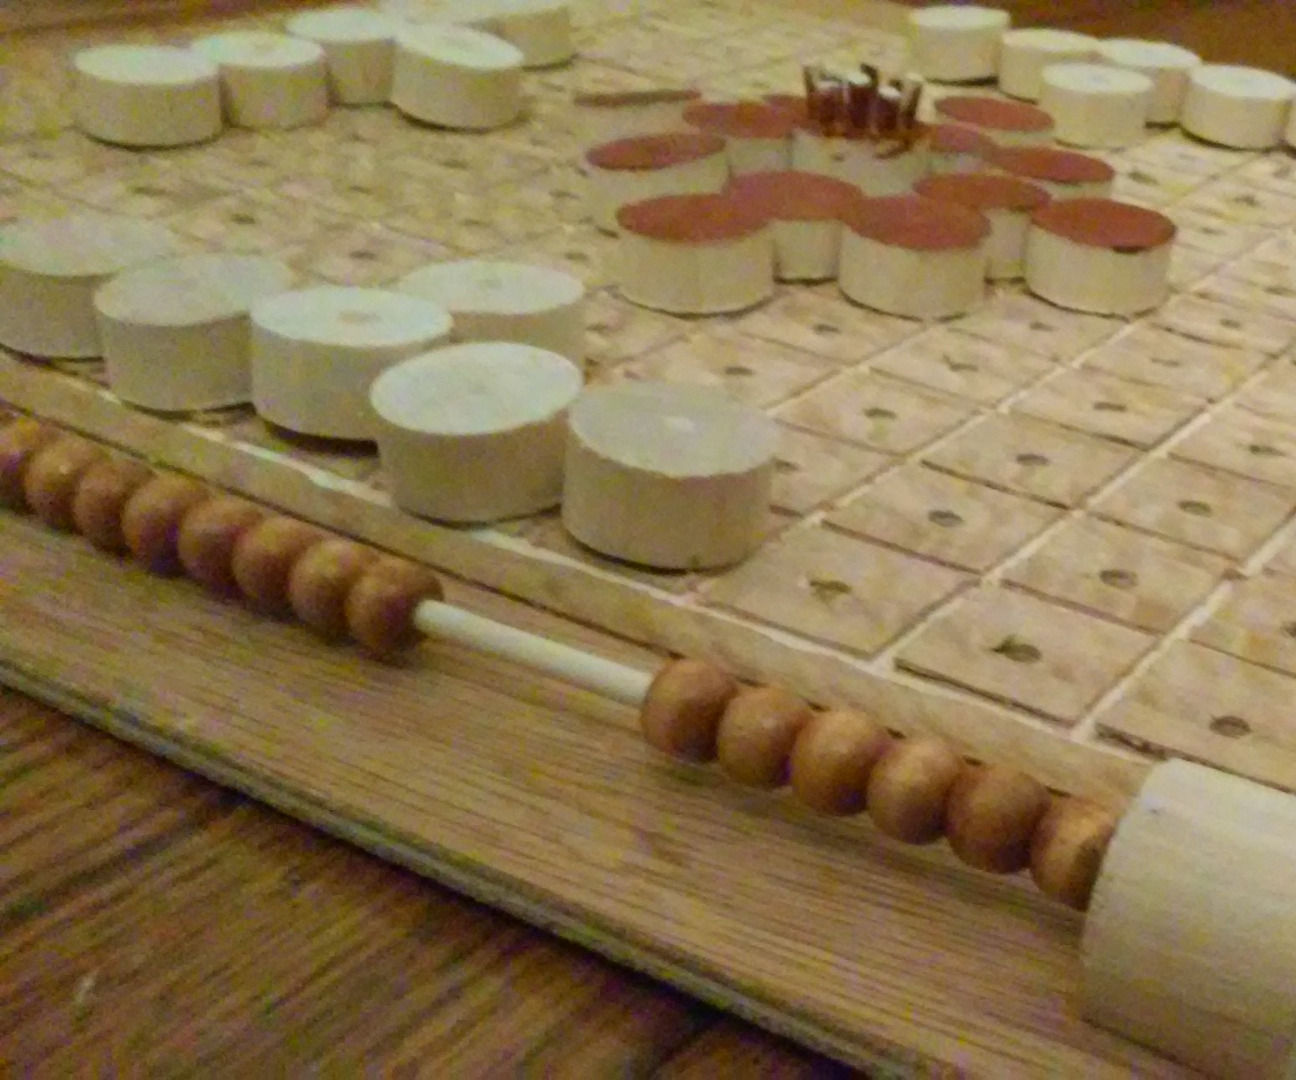 Hnefatafl Board - The Viking Board Game